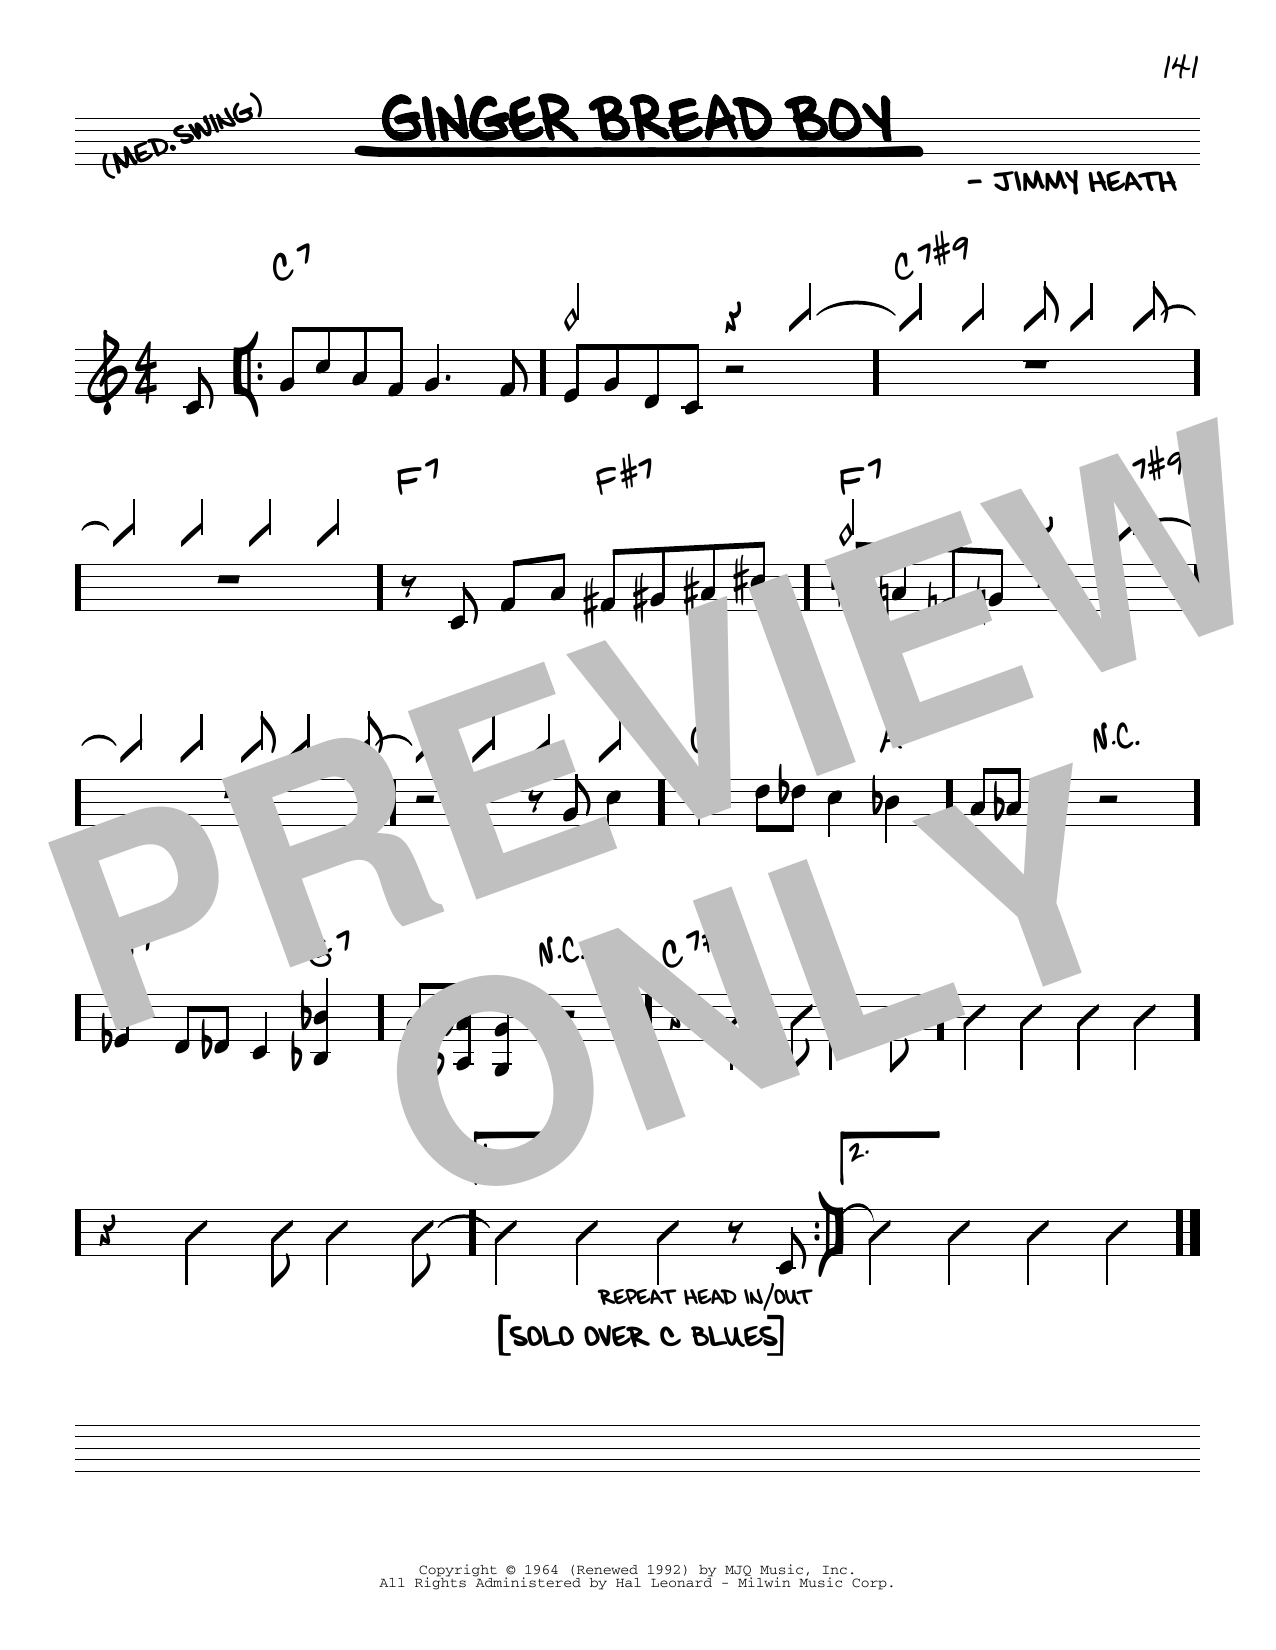 Jimmy Heath Ginger Bread Boy sheet music notes and chords